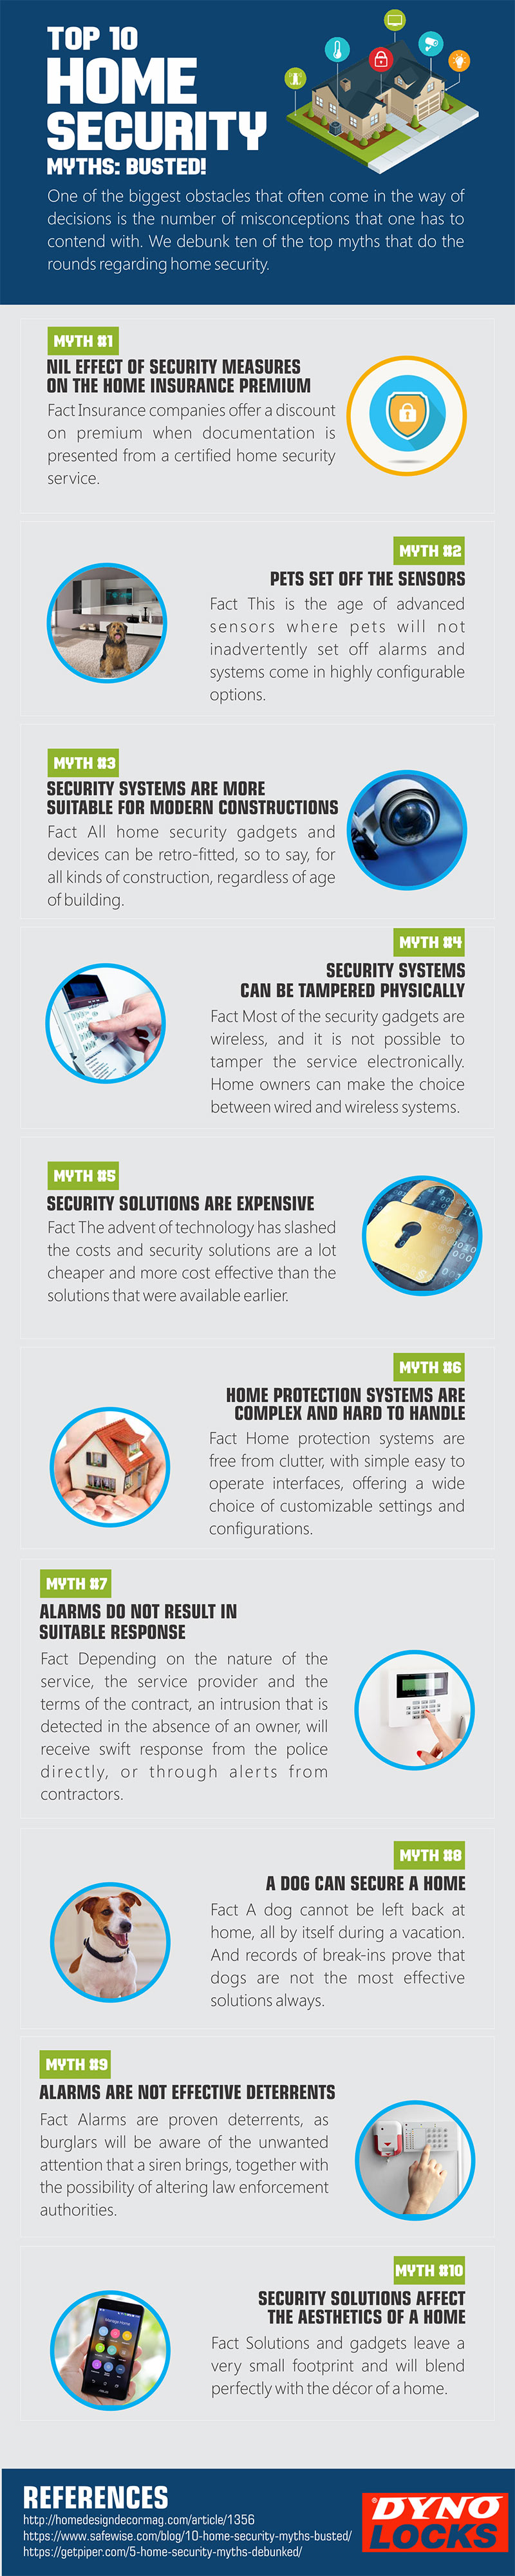 Top 10 Home Security Myths